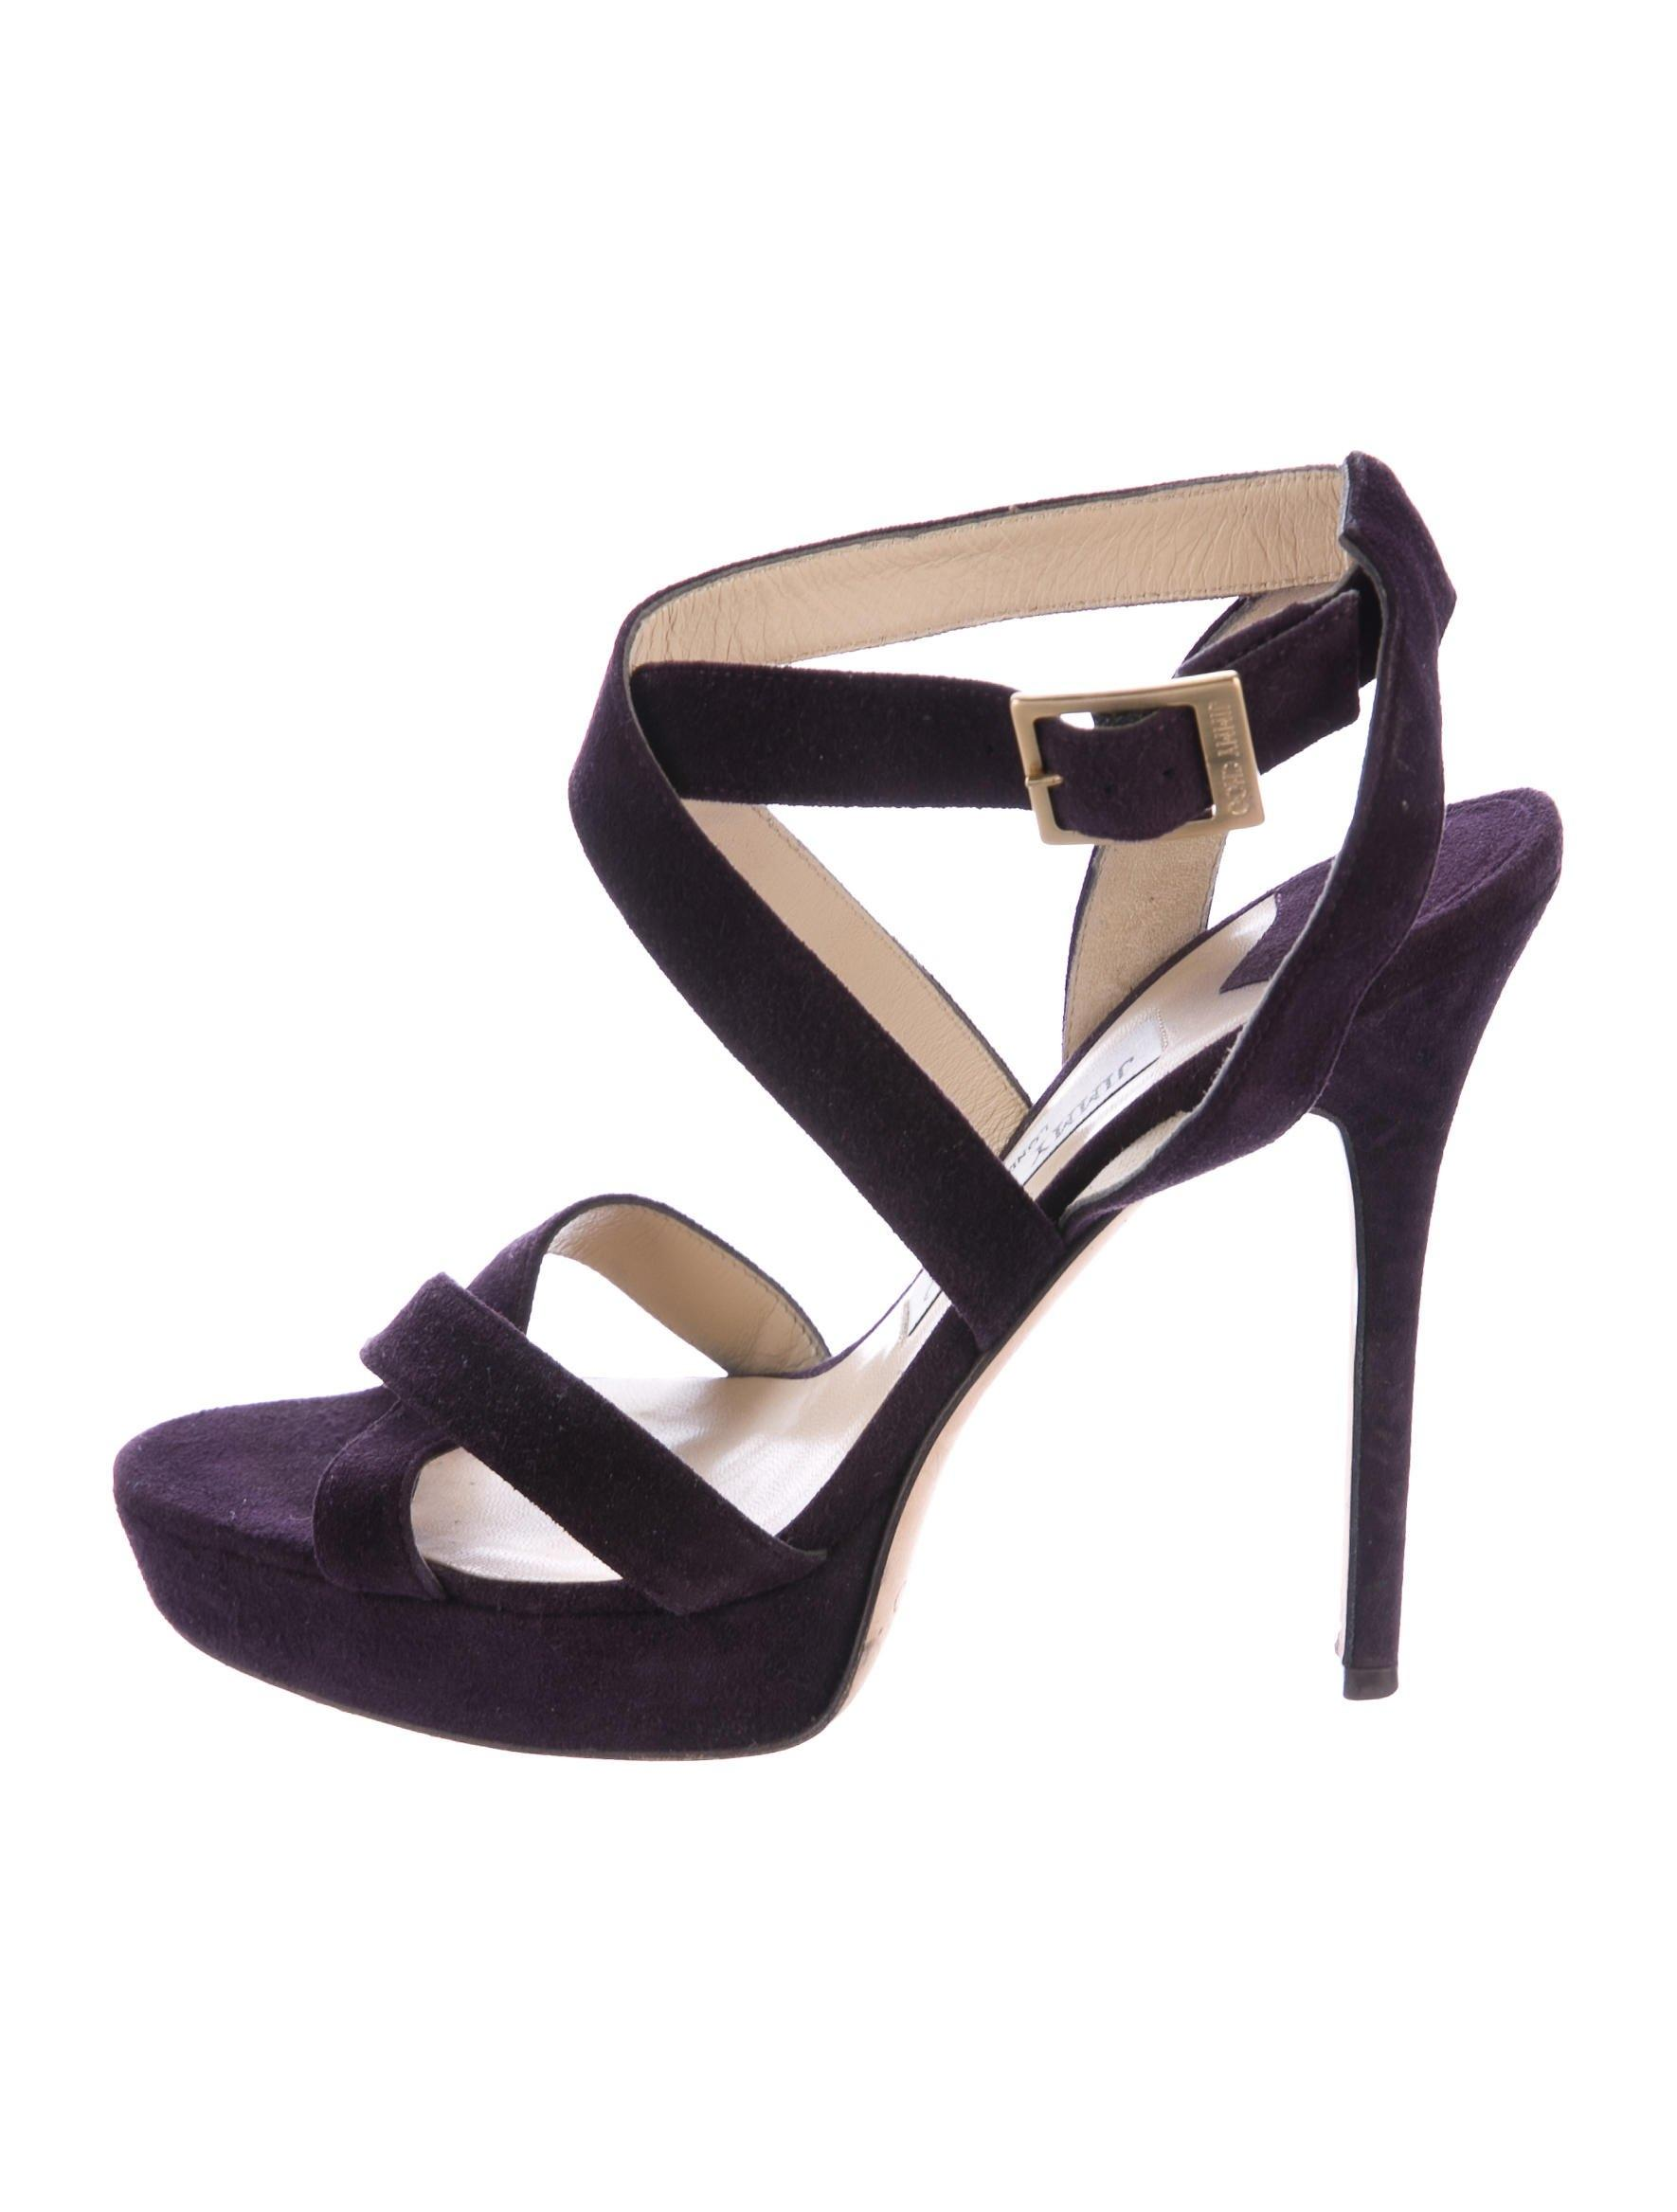 Jimmy Choo Suede Multistrap Sandals buy cheap browse cheap sale 100% guaranteed ioGoC